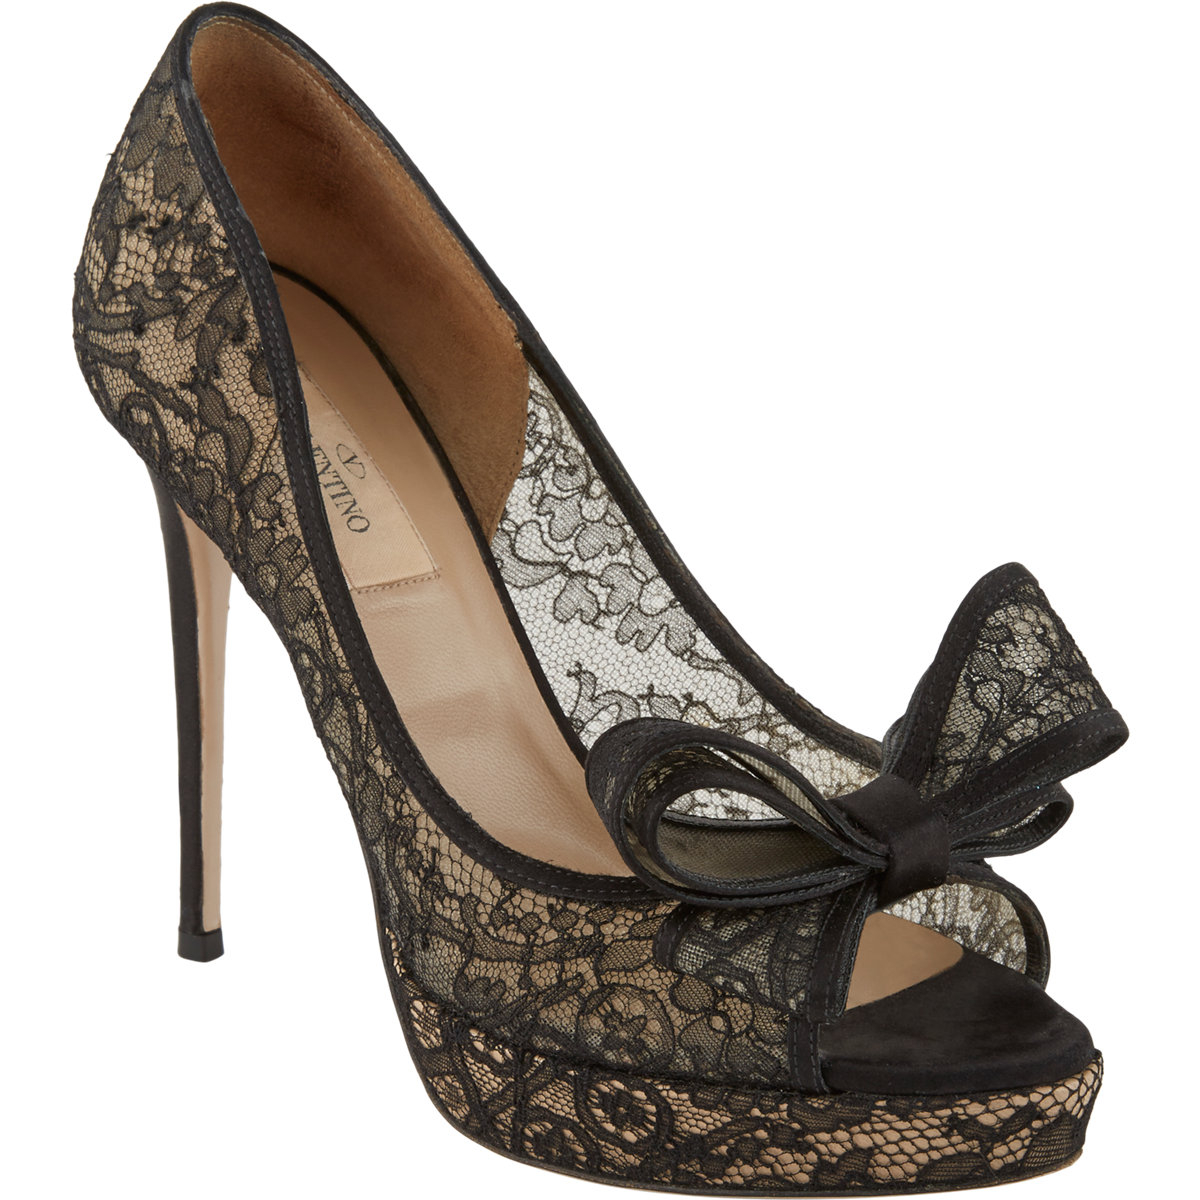 Black lace heels with bow - photo#5